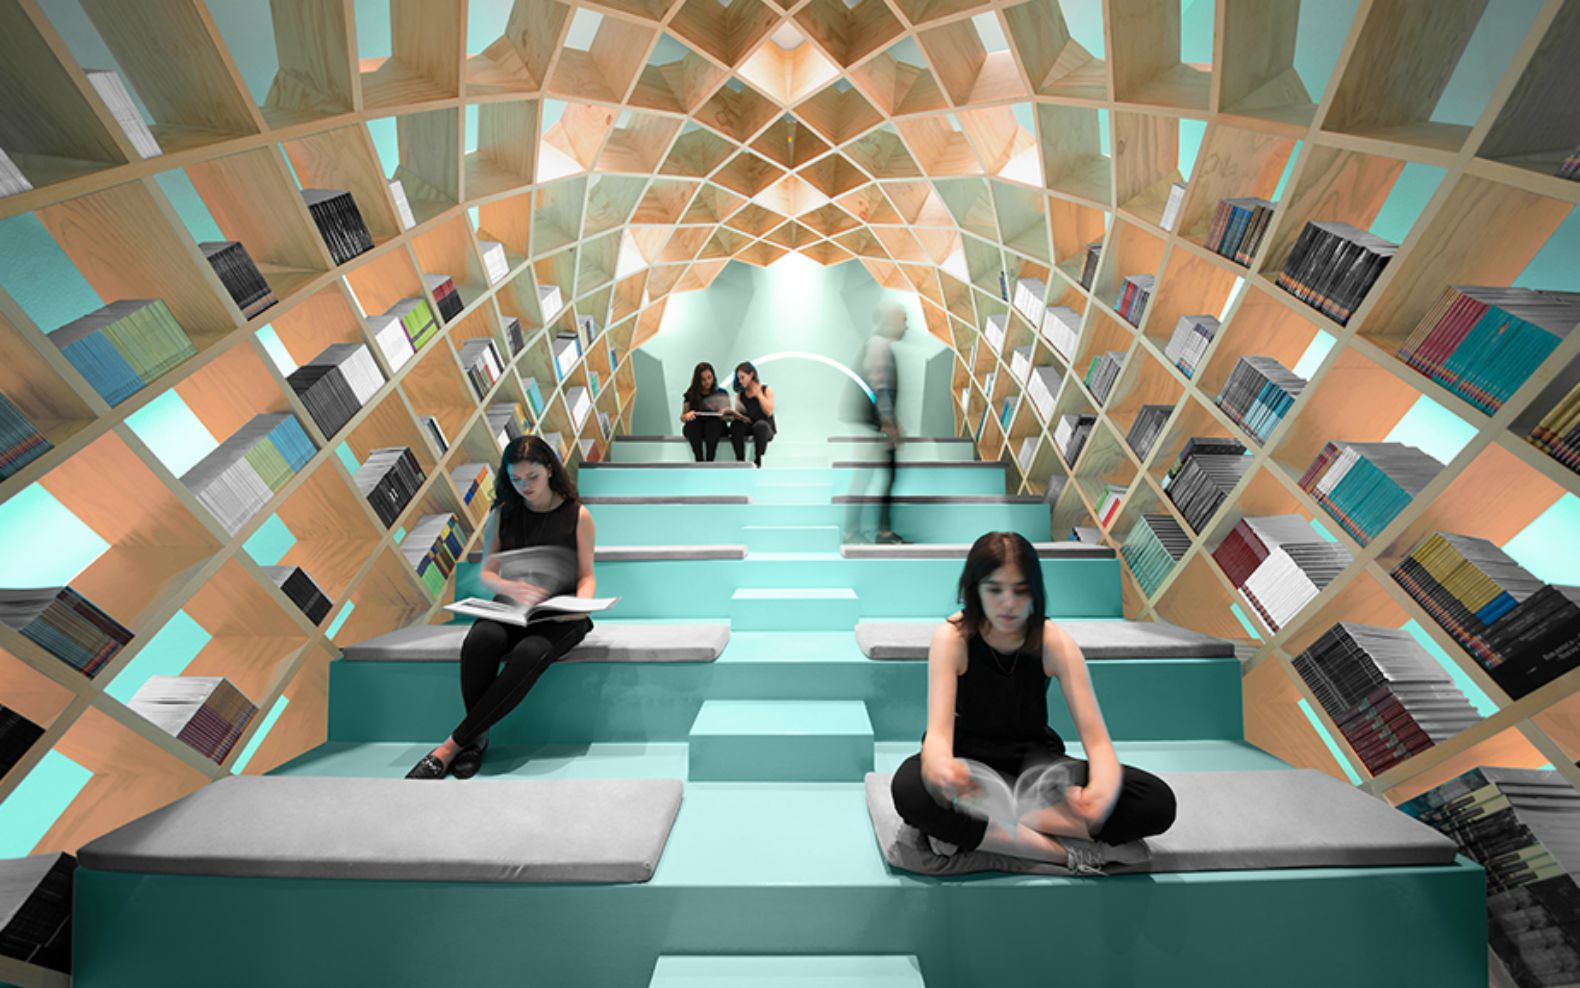 Geometric Bookshelf Turns The Library Into A Personal Reading Pod